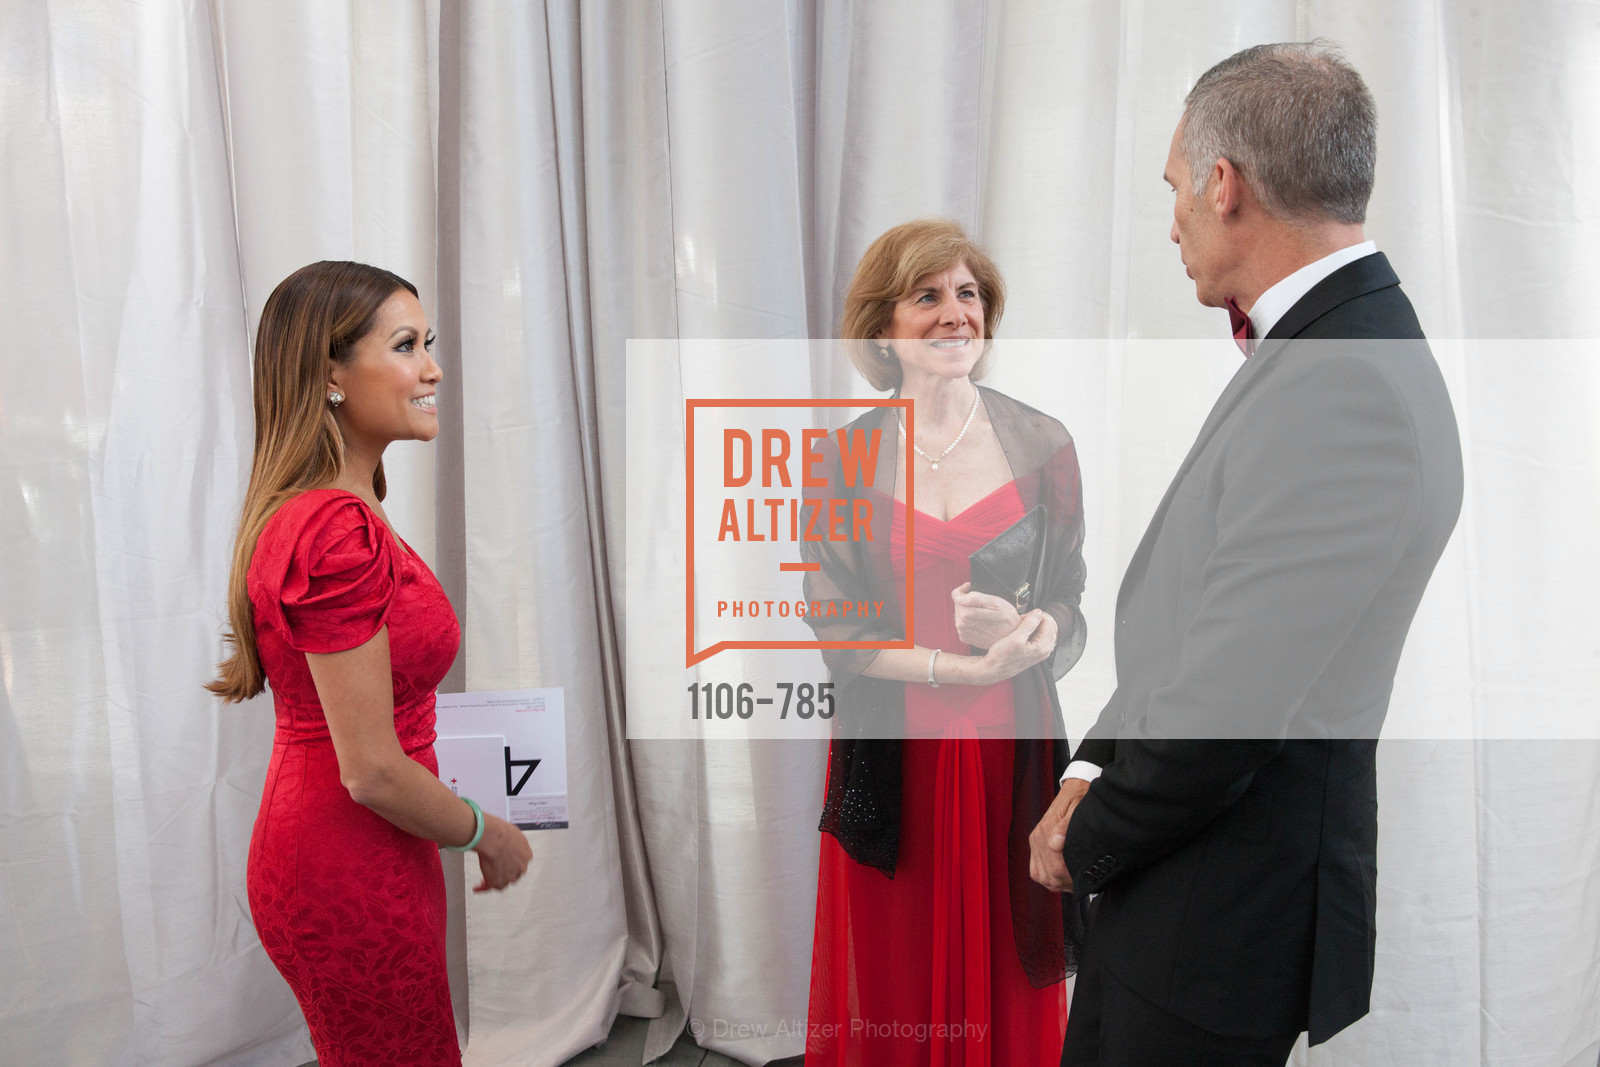 Lillian Phan, Gail McGovern, Mark Cloutier, 2015 RED CROSS Gala, US, April 11th, 2015,Drew Altizer, Drew Altizer Photography, full-service agency, private events, San Francisco photographer, photographer california